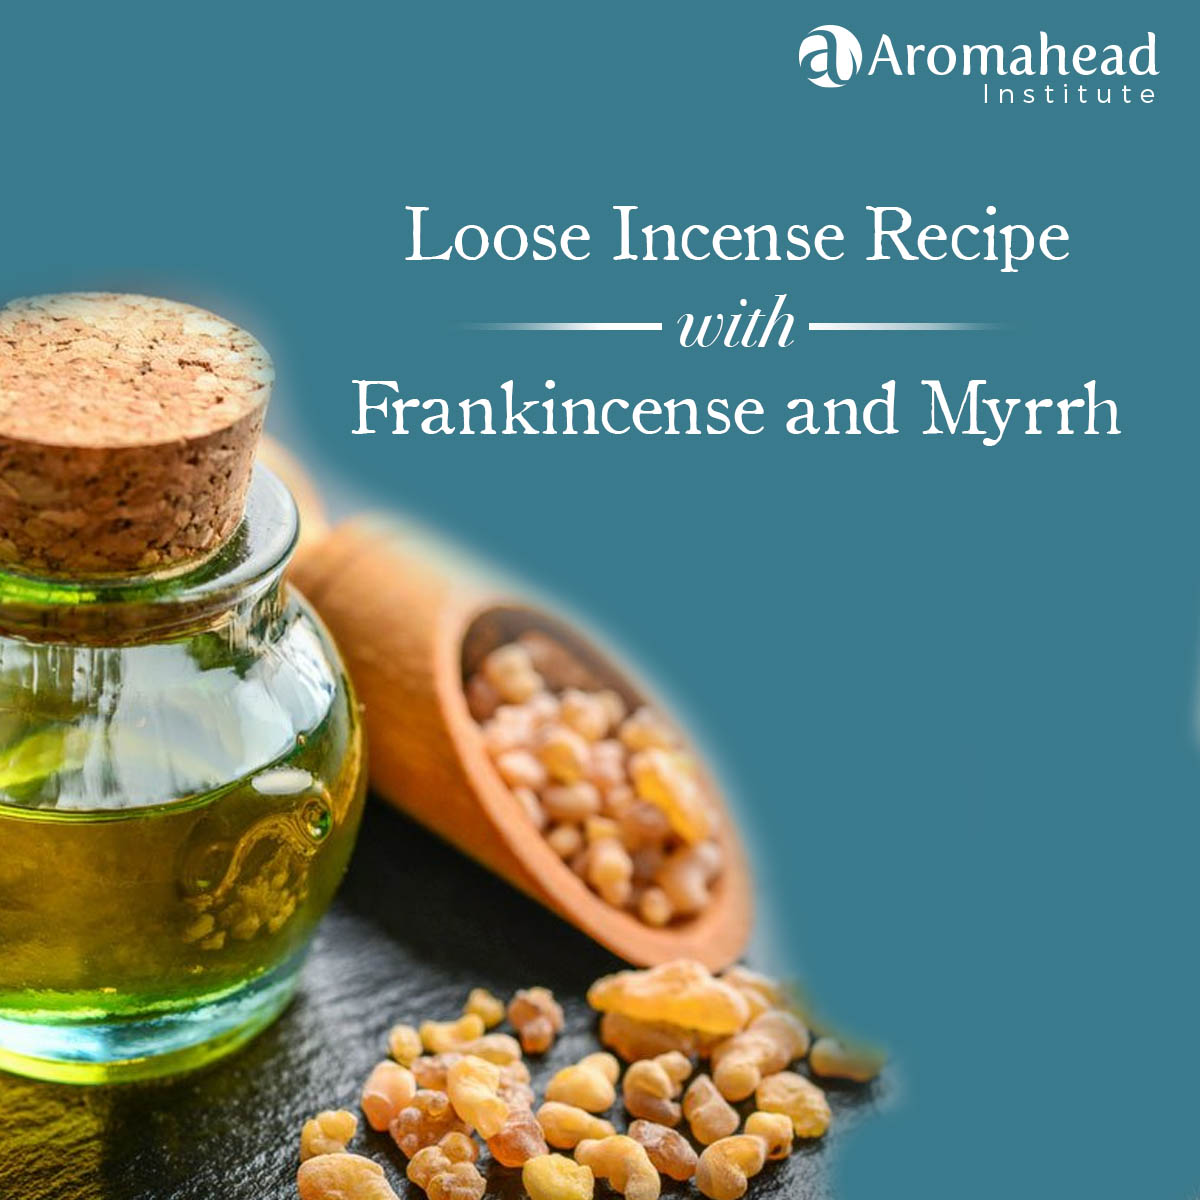 Loose Incense Recipe with Frankincense and Myrrh